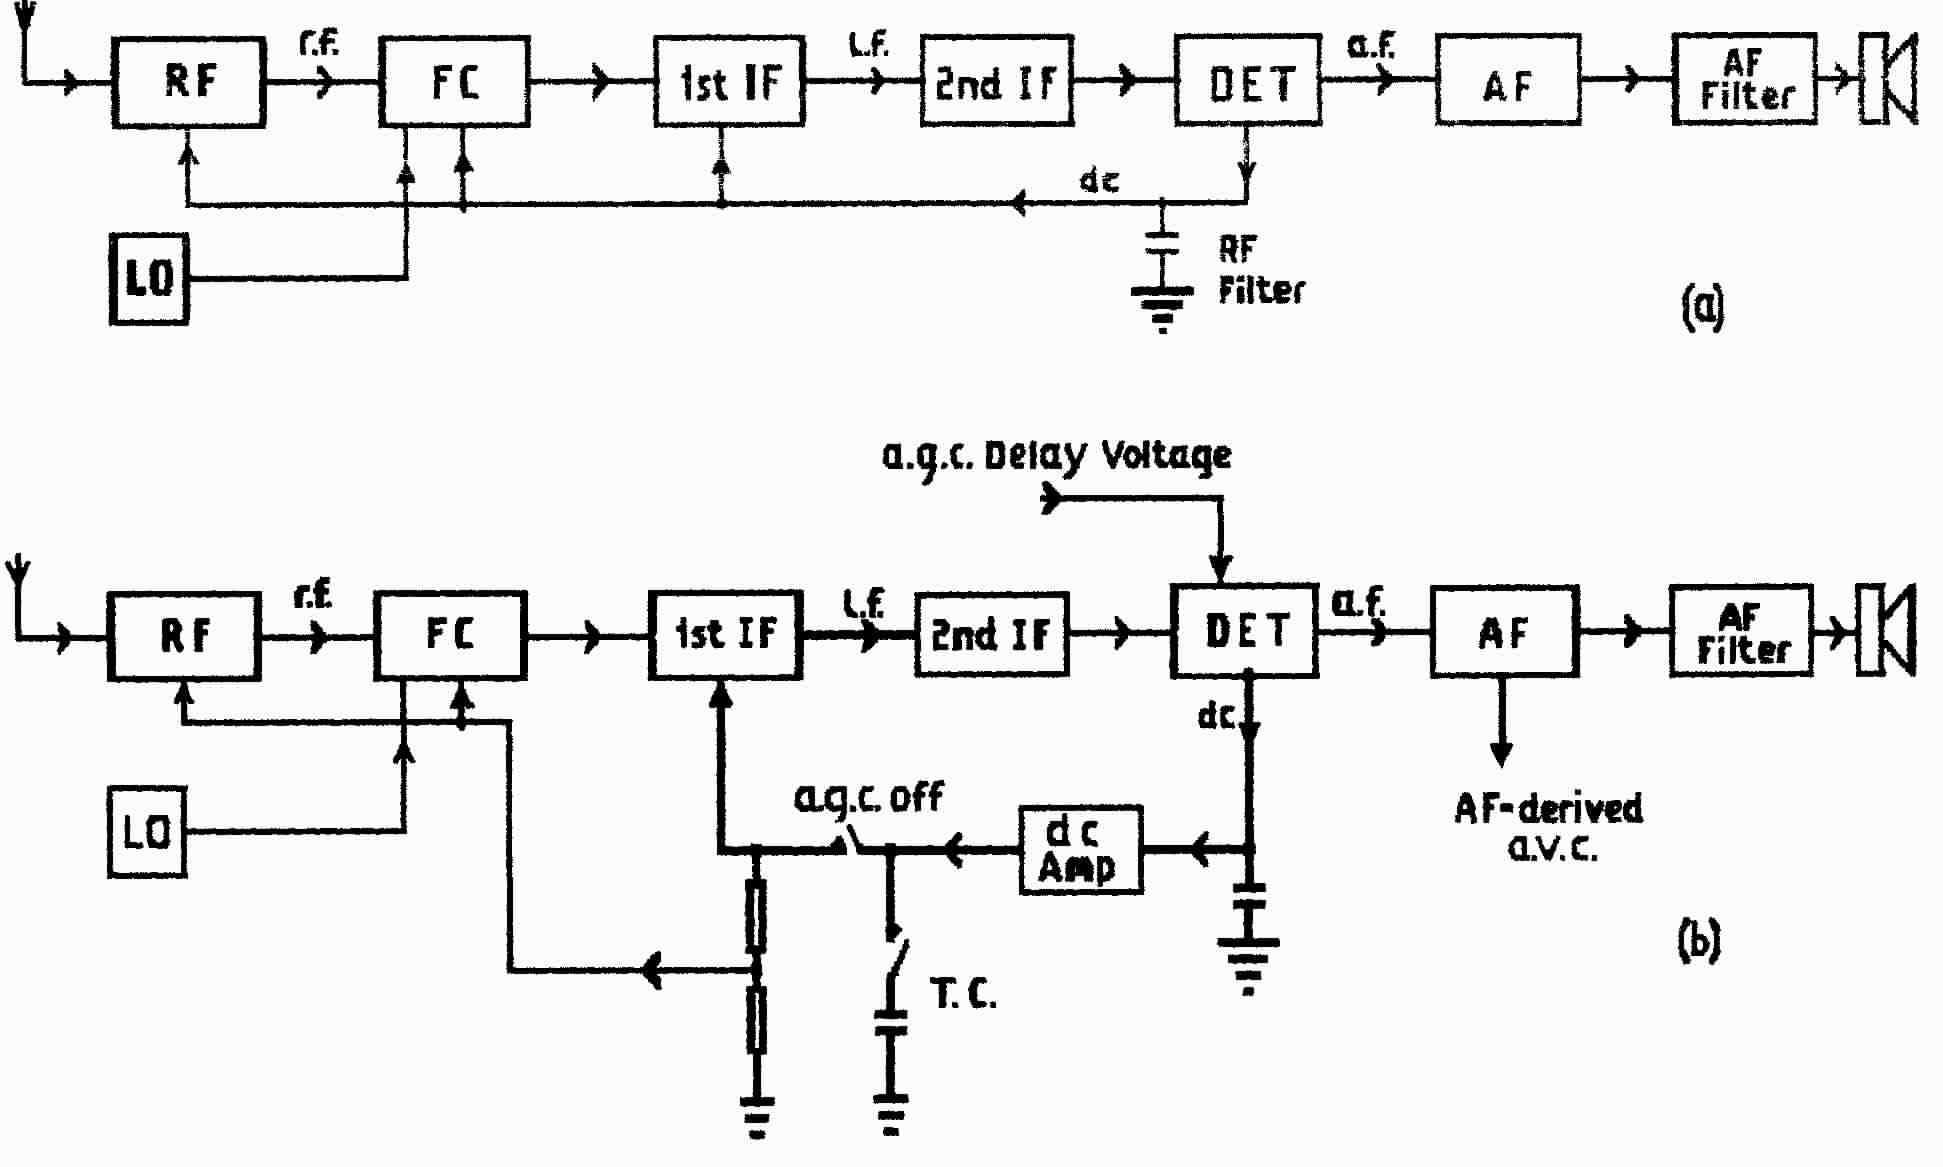 Fundamentals 2 Basic Radio Theory This Is Probably Become The Simplest Frequency Rf Transmitter